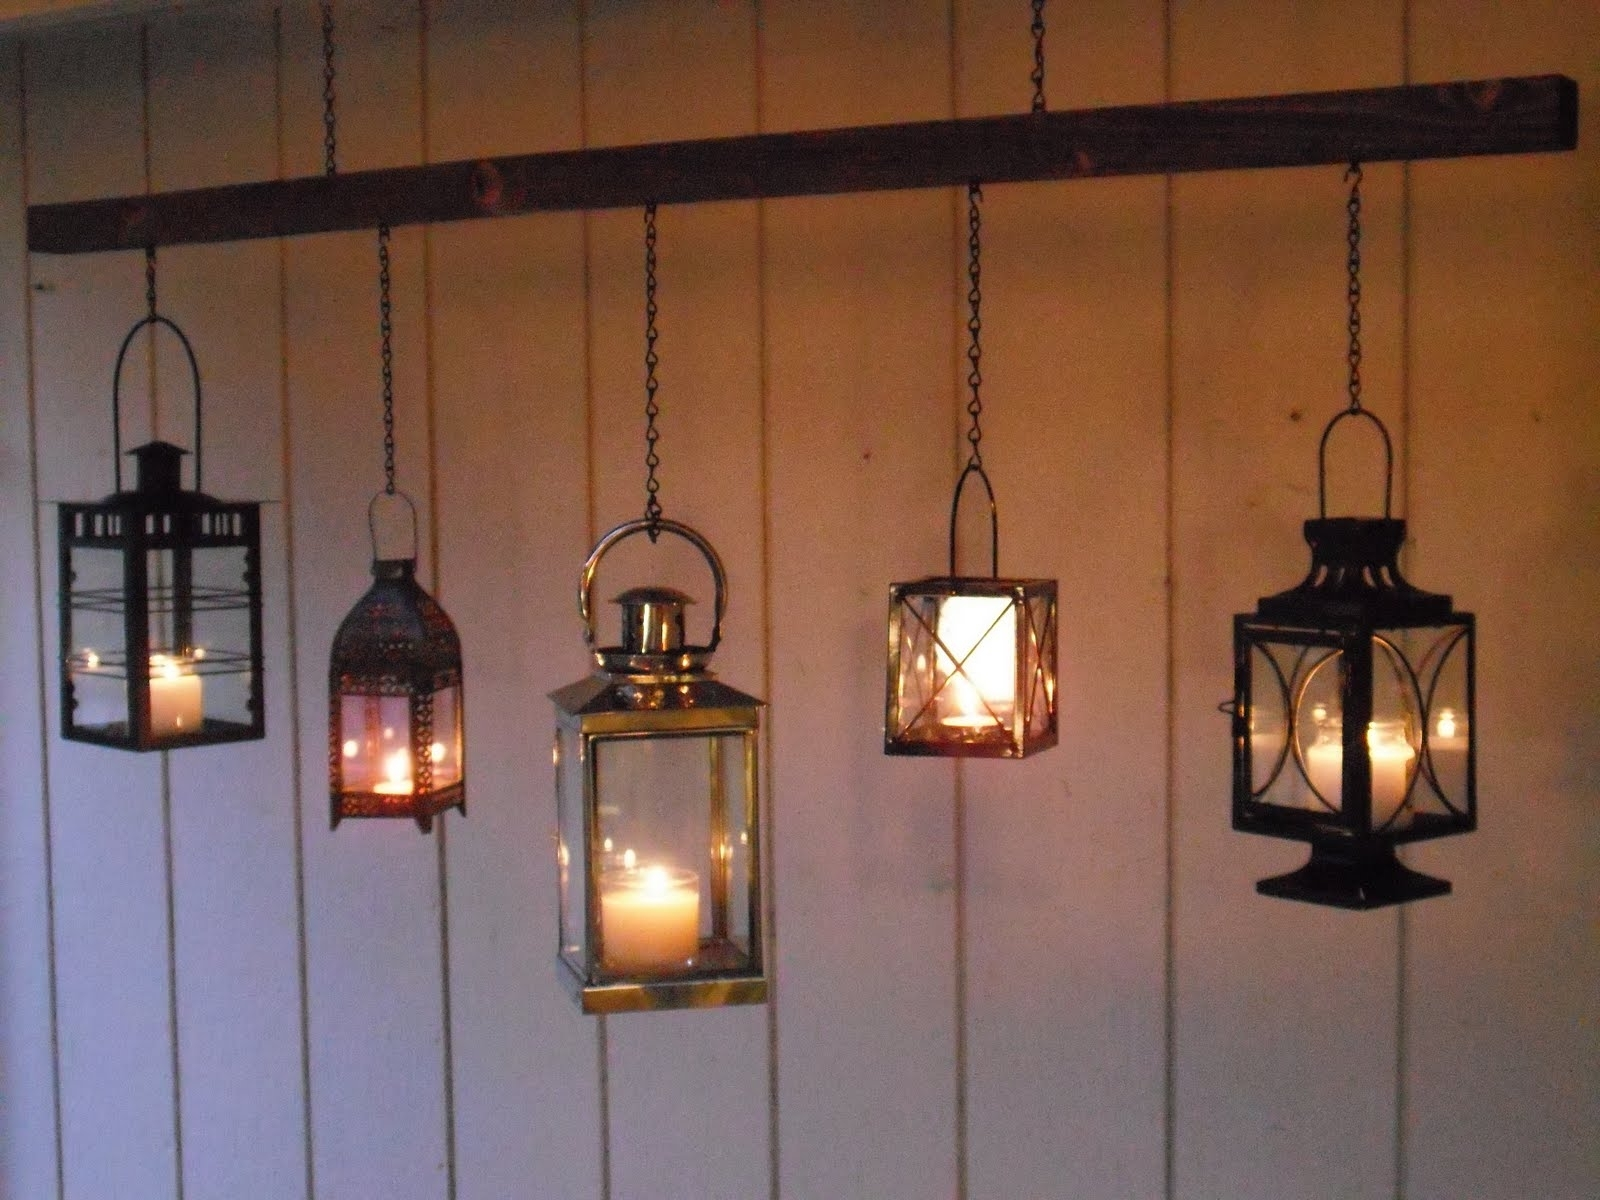 Wedding Decoration Hanging Candle Lanterns – Matt And Jentry Home Design Throughout Newest Outdoor Hanging Lanterns (View 18 of 20)